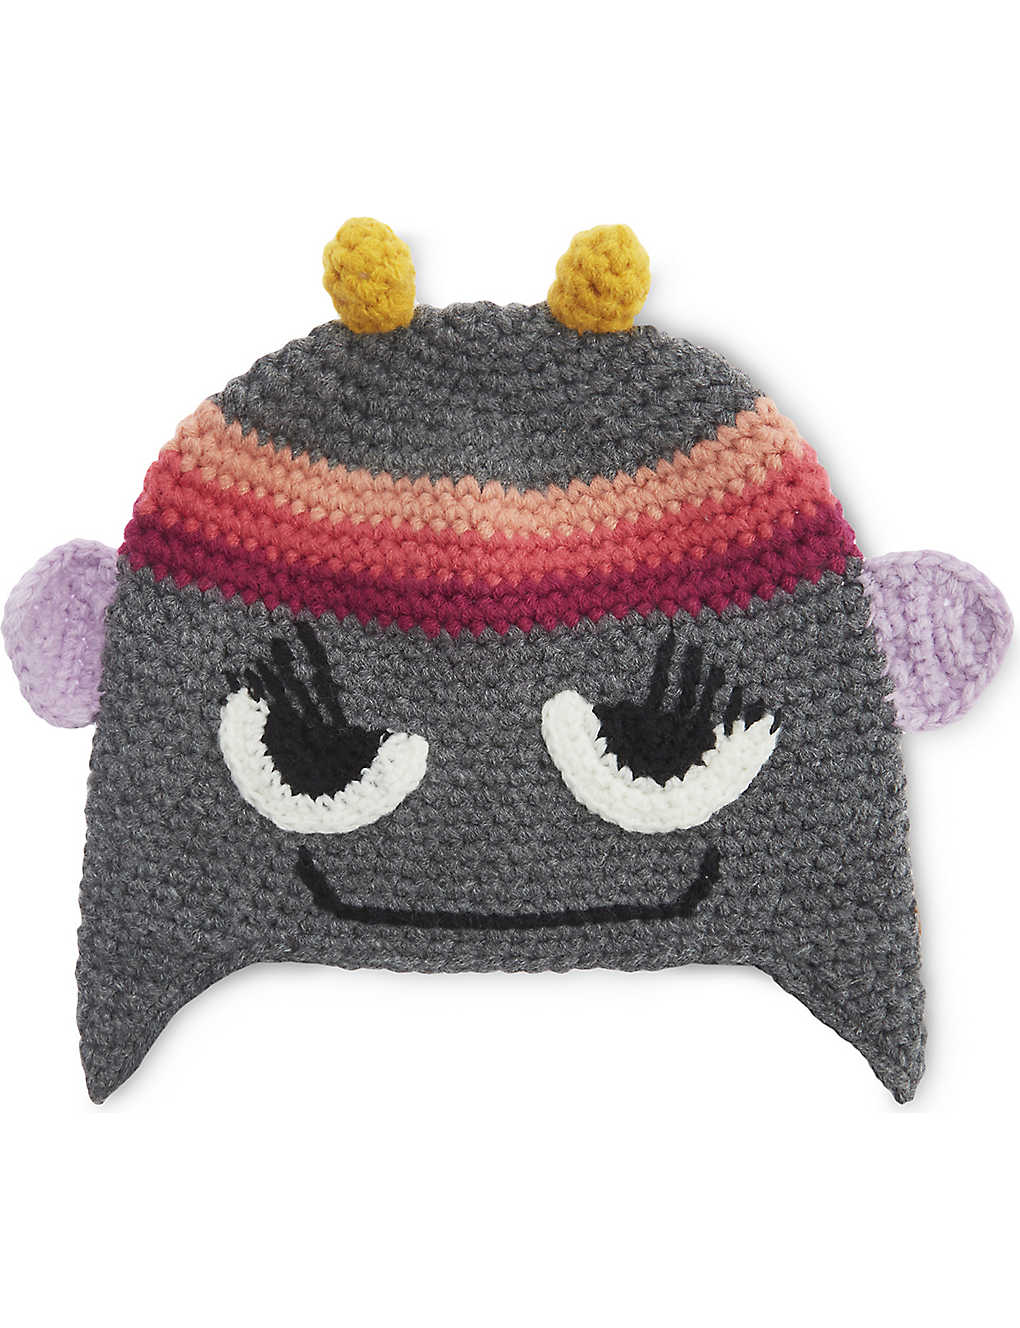 BARTS AL - Monster knitted beanie hat  6aaeeb40acf2